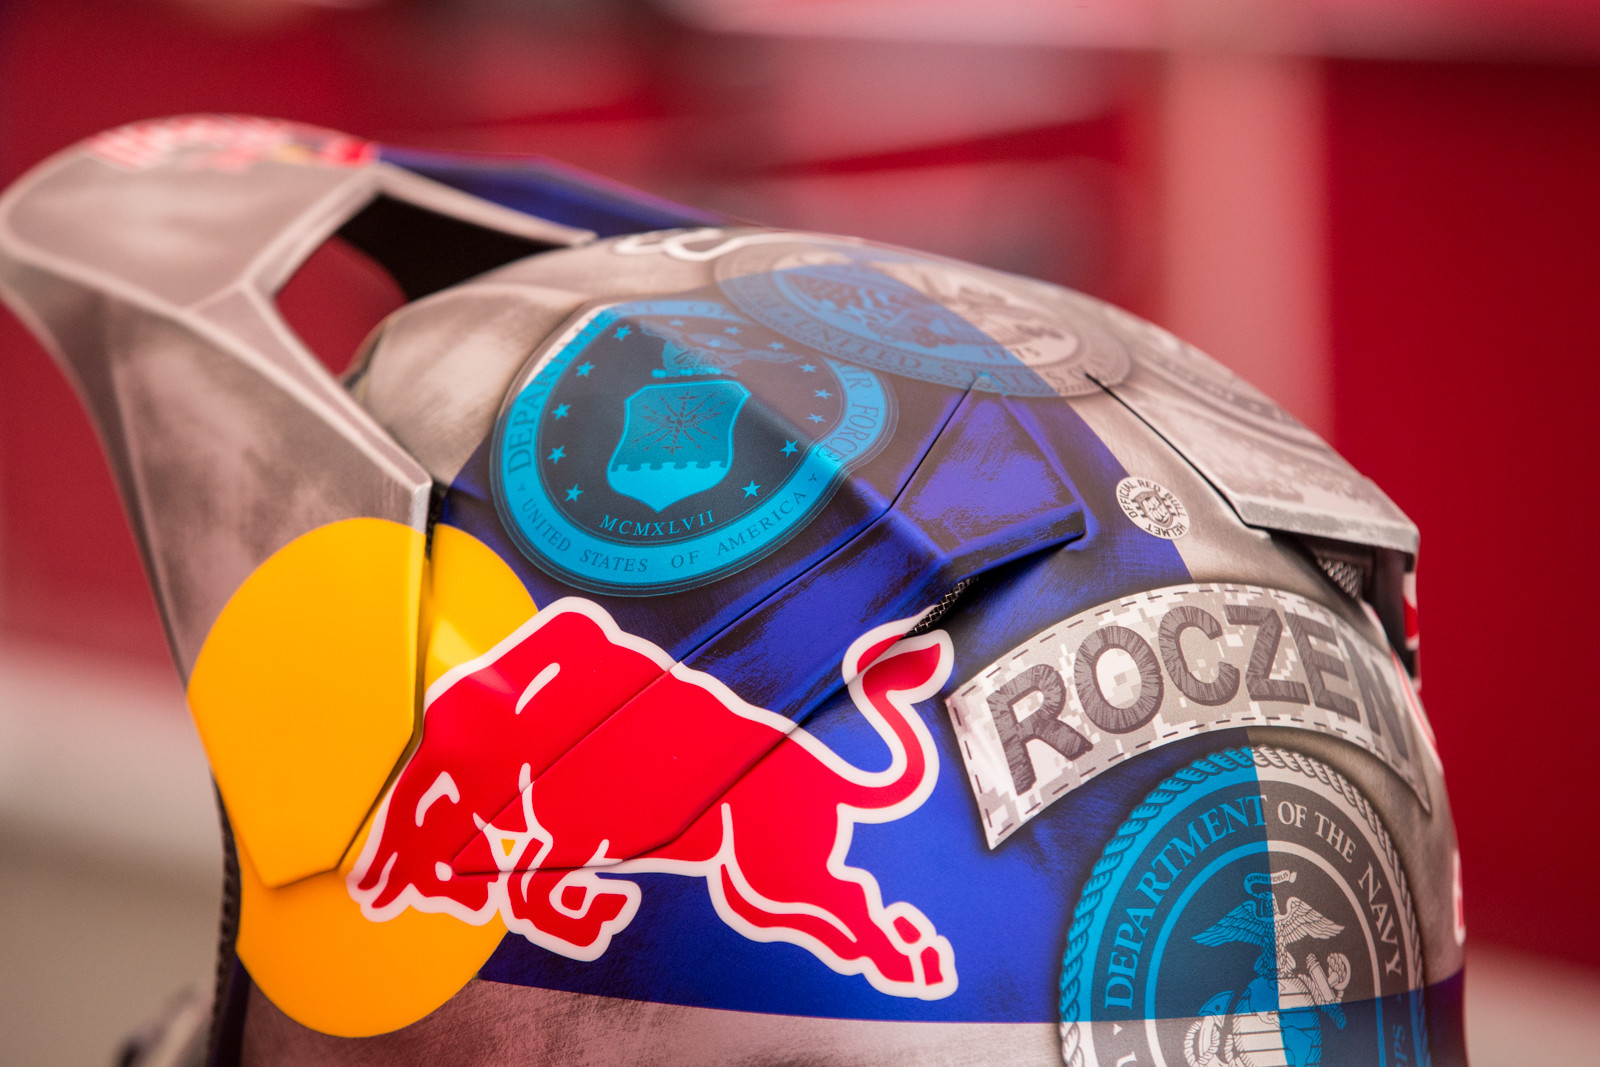 A closer look at K-Roc's lid.